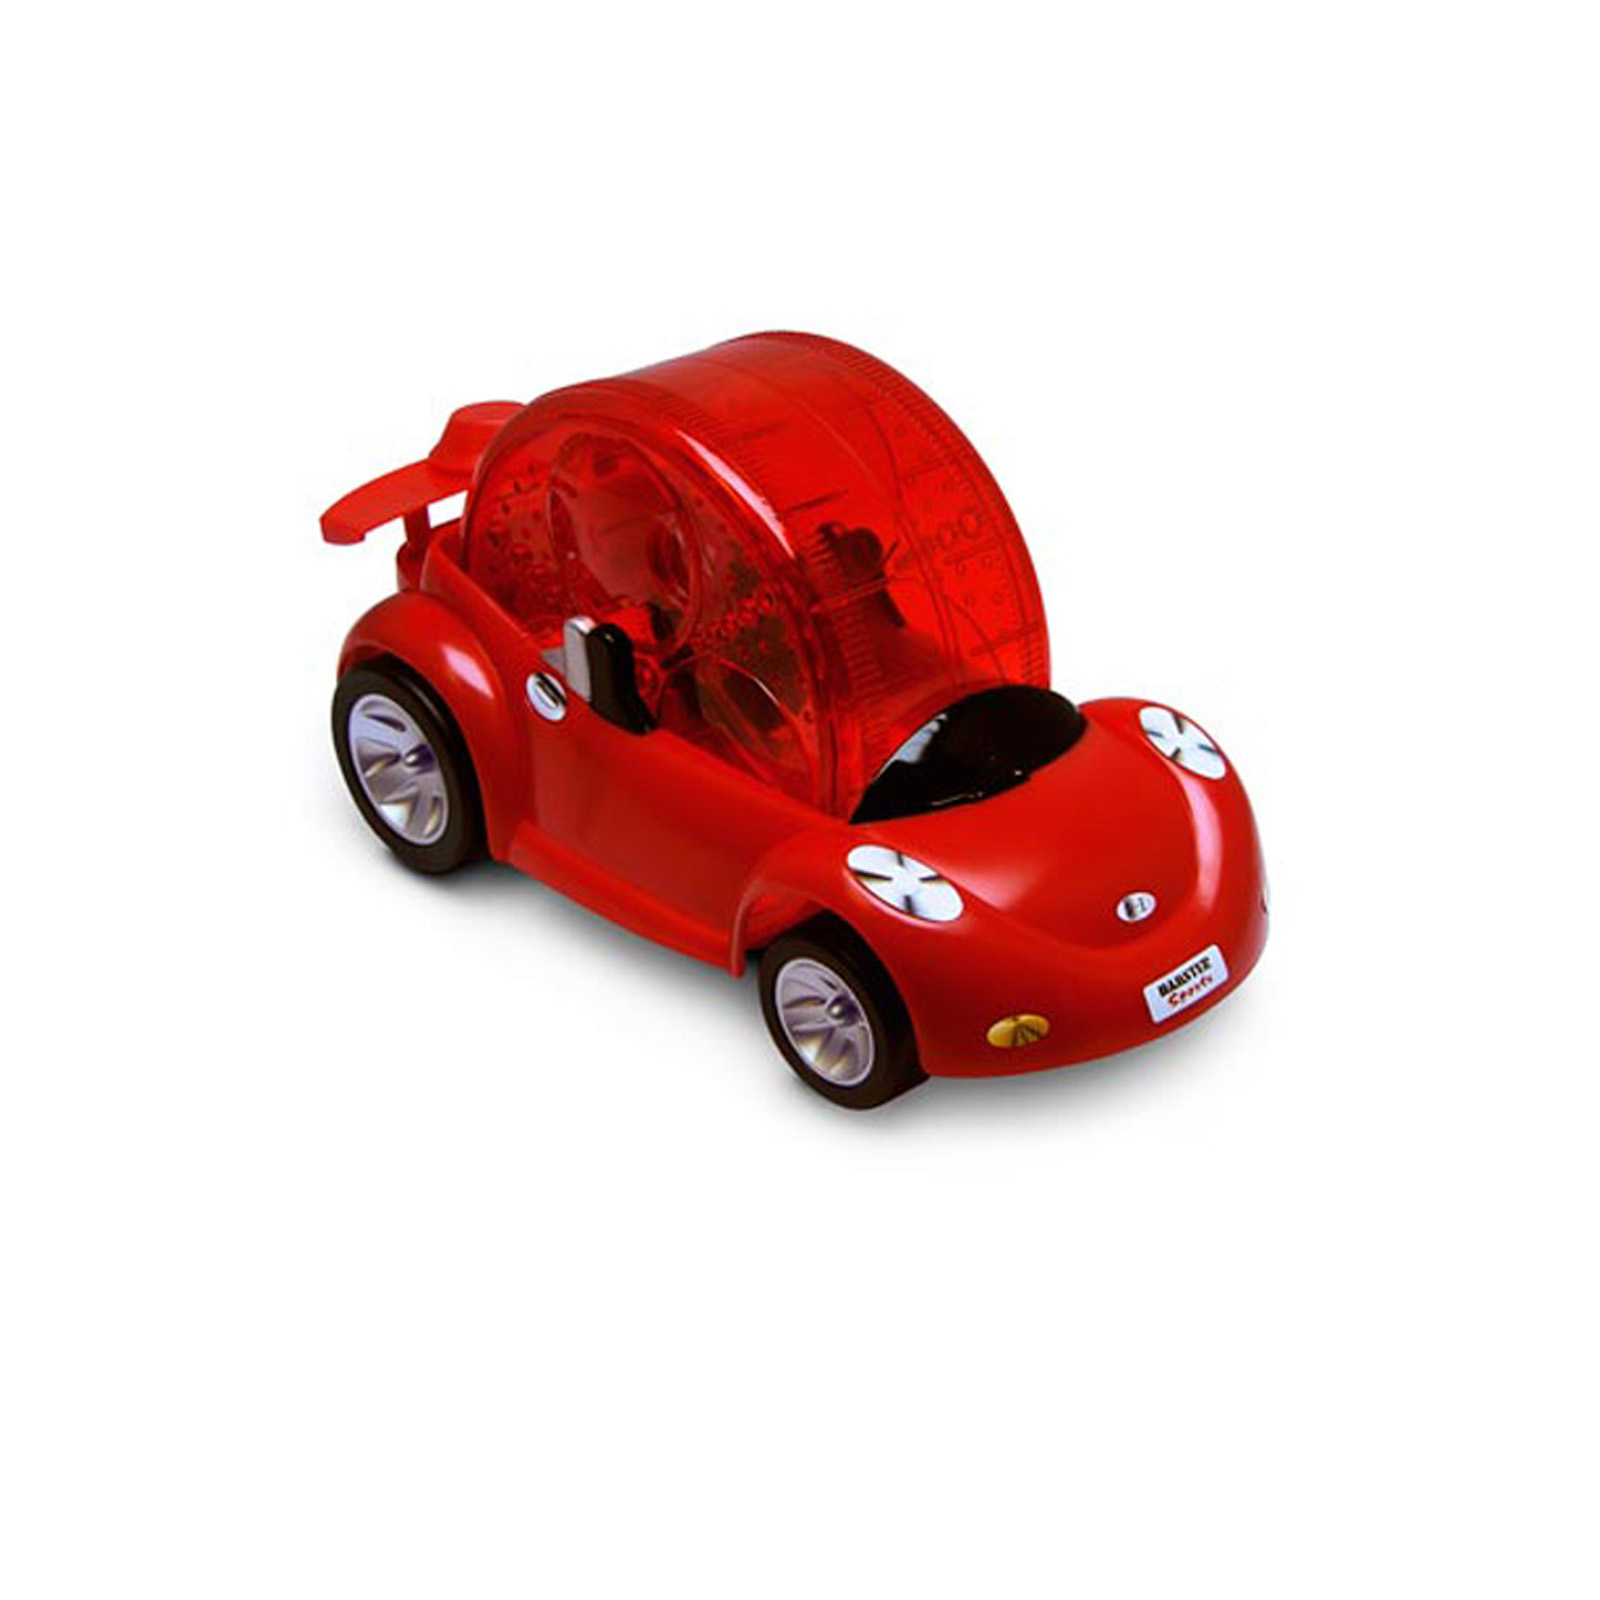 Pts Toy Critter Cruiser Car